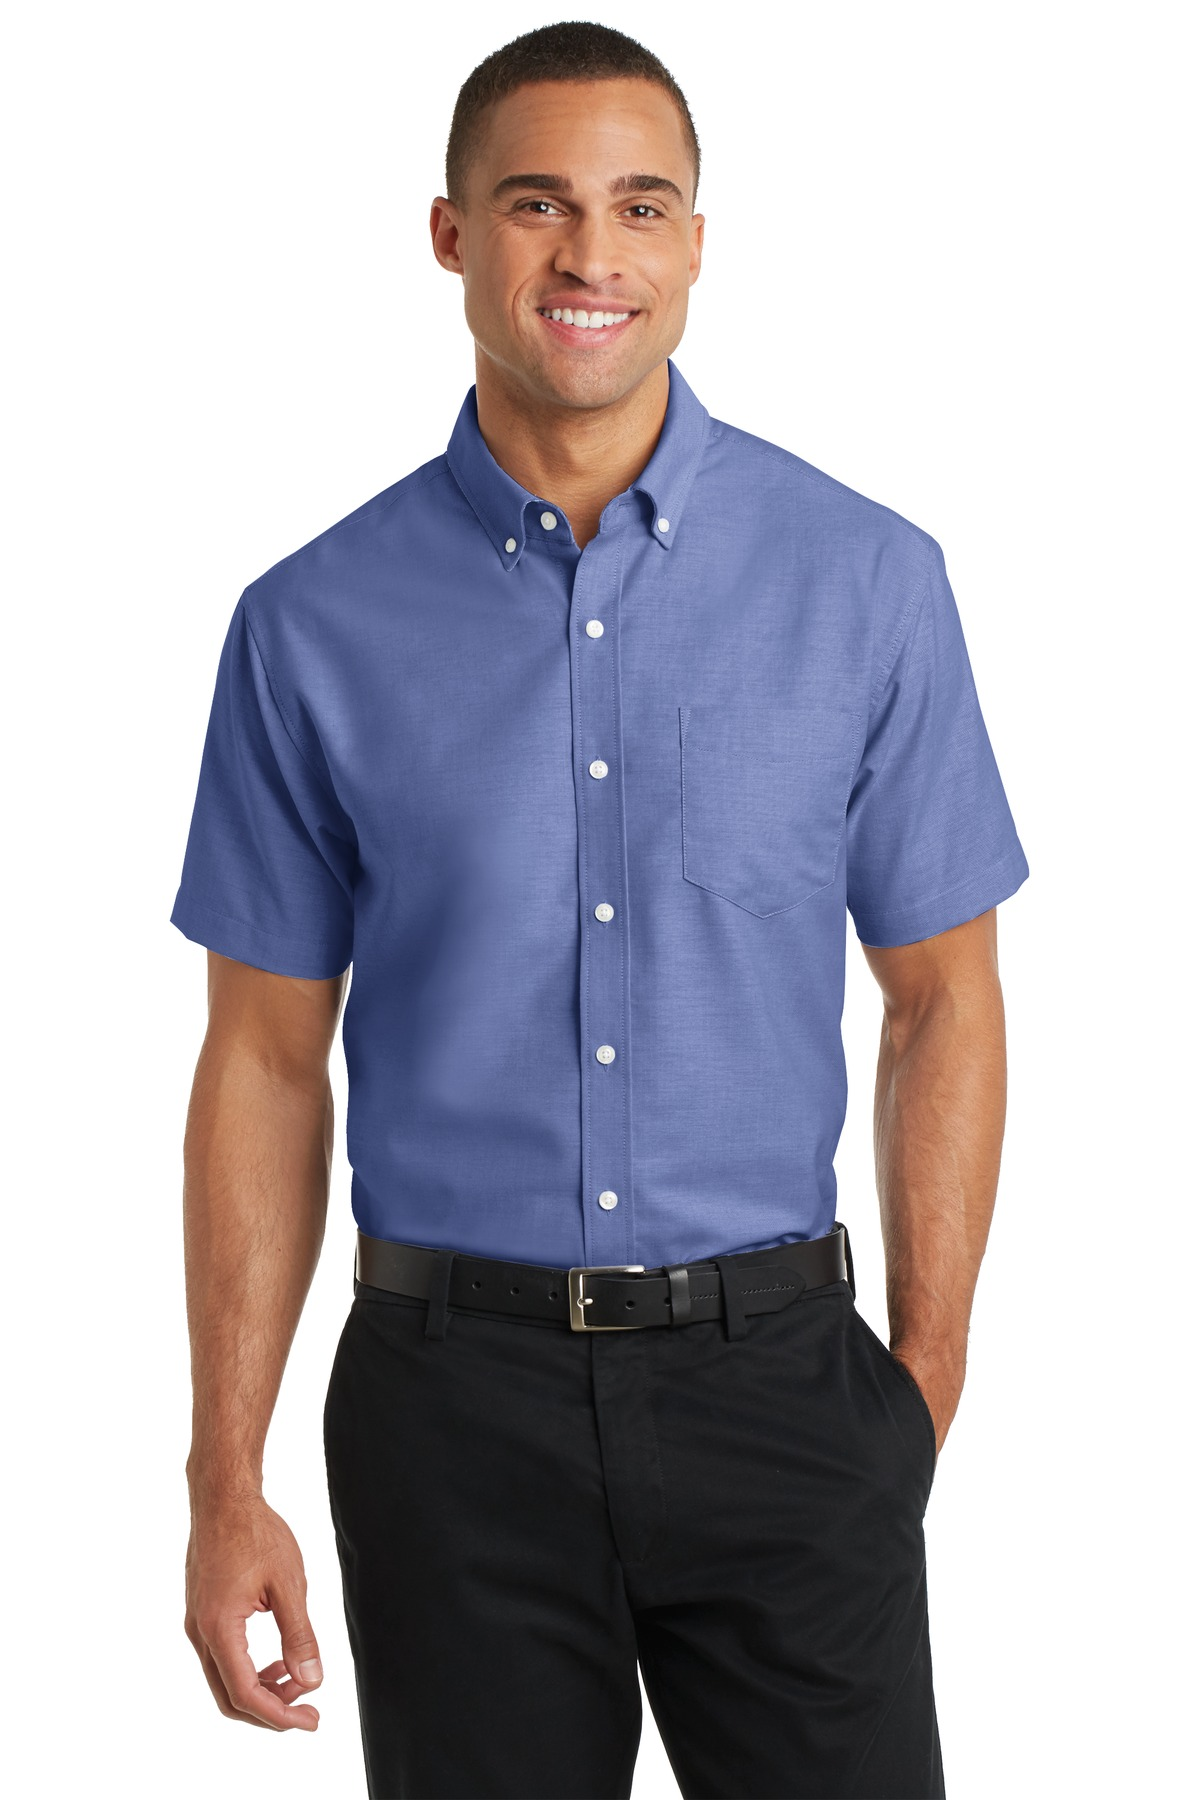 Short-sleeve button-down shirts help you stay cool around the midsection and in bounds of the office dress code. The 12 shirts we've selected below come in a variety of colors, patterns, and fits.